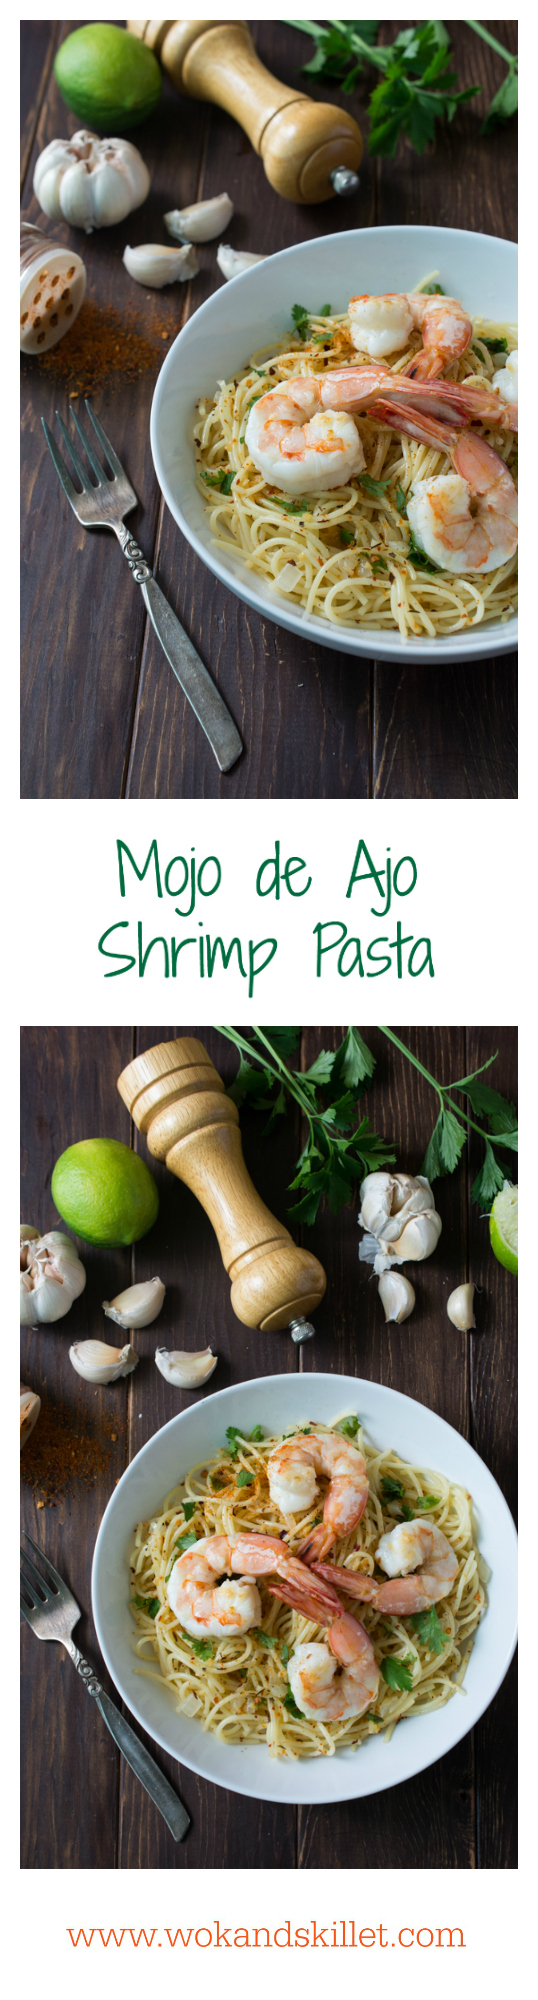 Mojo de Ajo Shrimp Pasta is a Mexican inspired version of Spaghetti aglio e olio. Pasta tossed in Mojo de Ajo (garlic oil), topped with succulent shrimp, chili flakes and fresh parsley or cilantro.